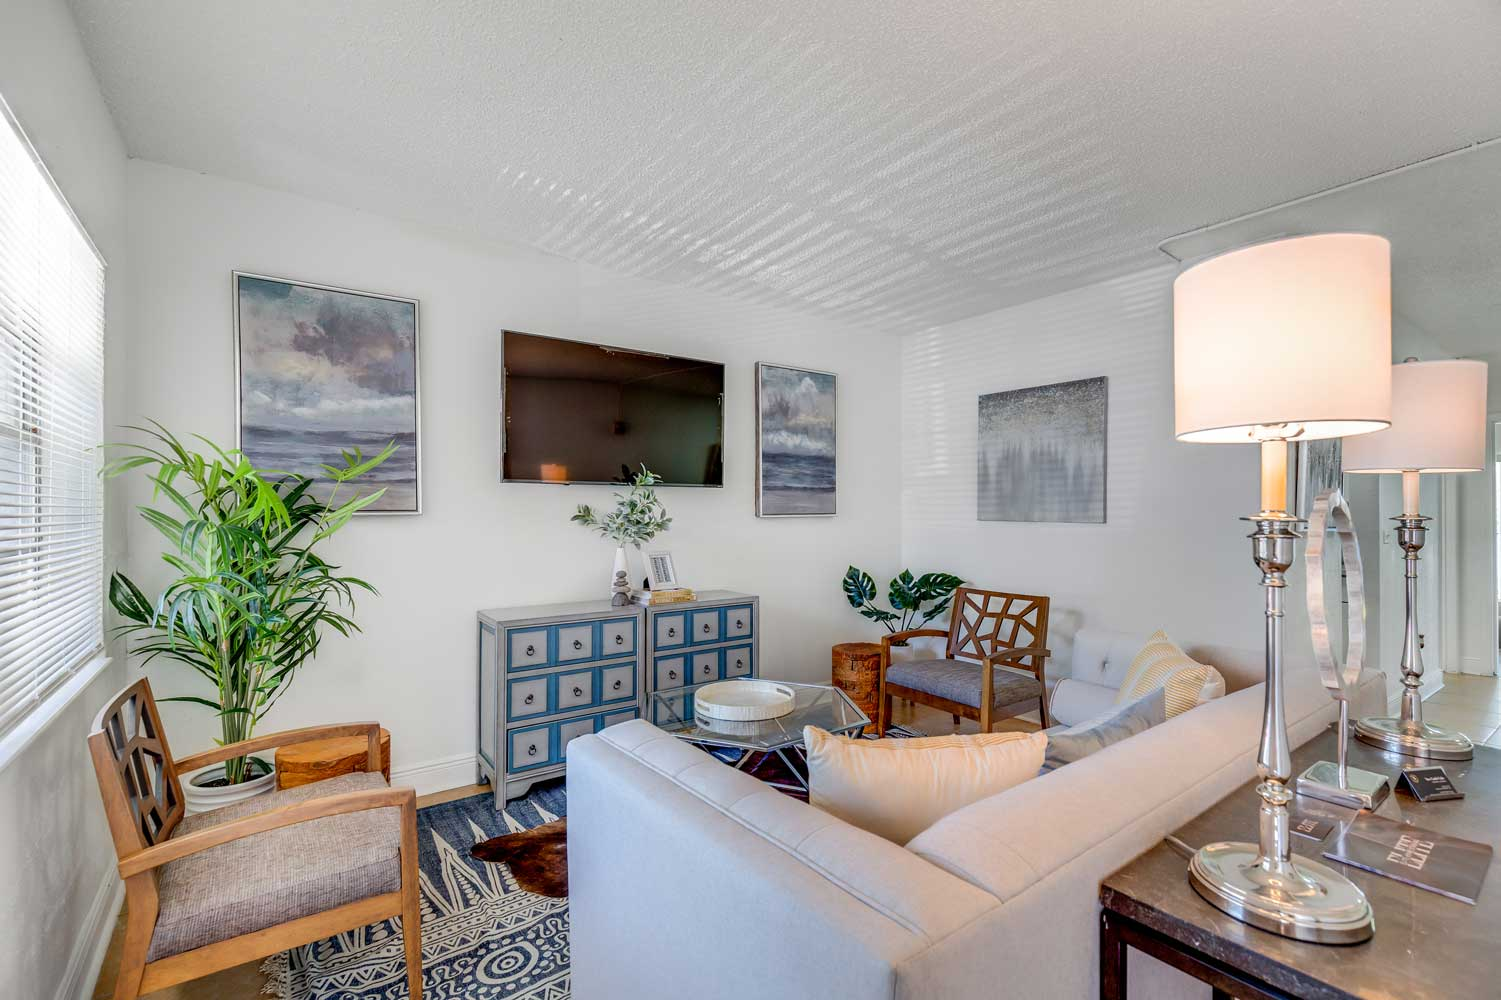 Newly Renovated Interiors at New Castle Lake in Miami, FL